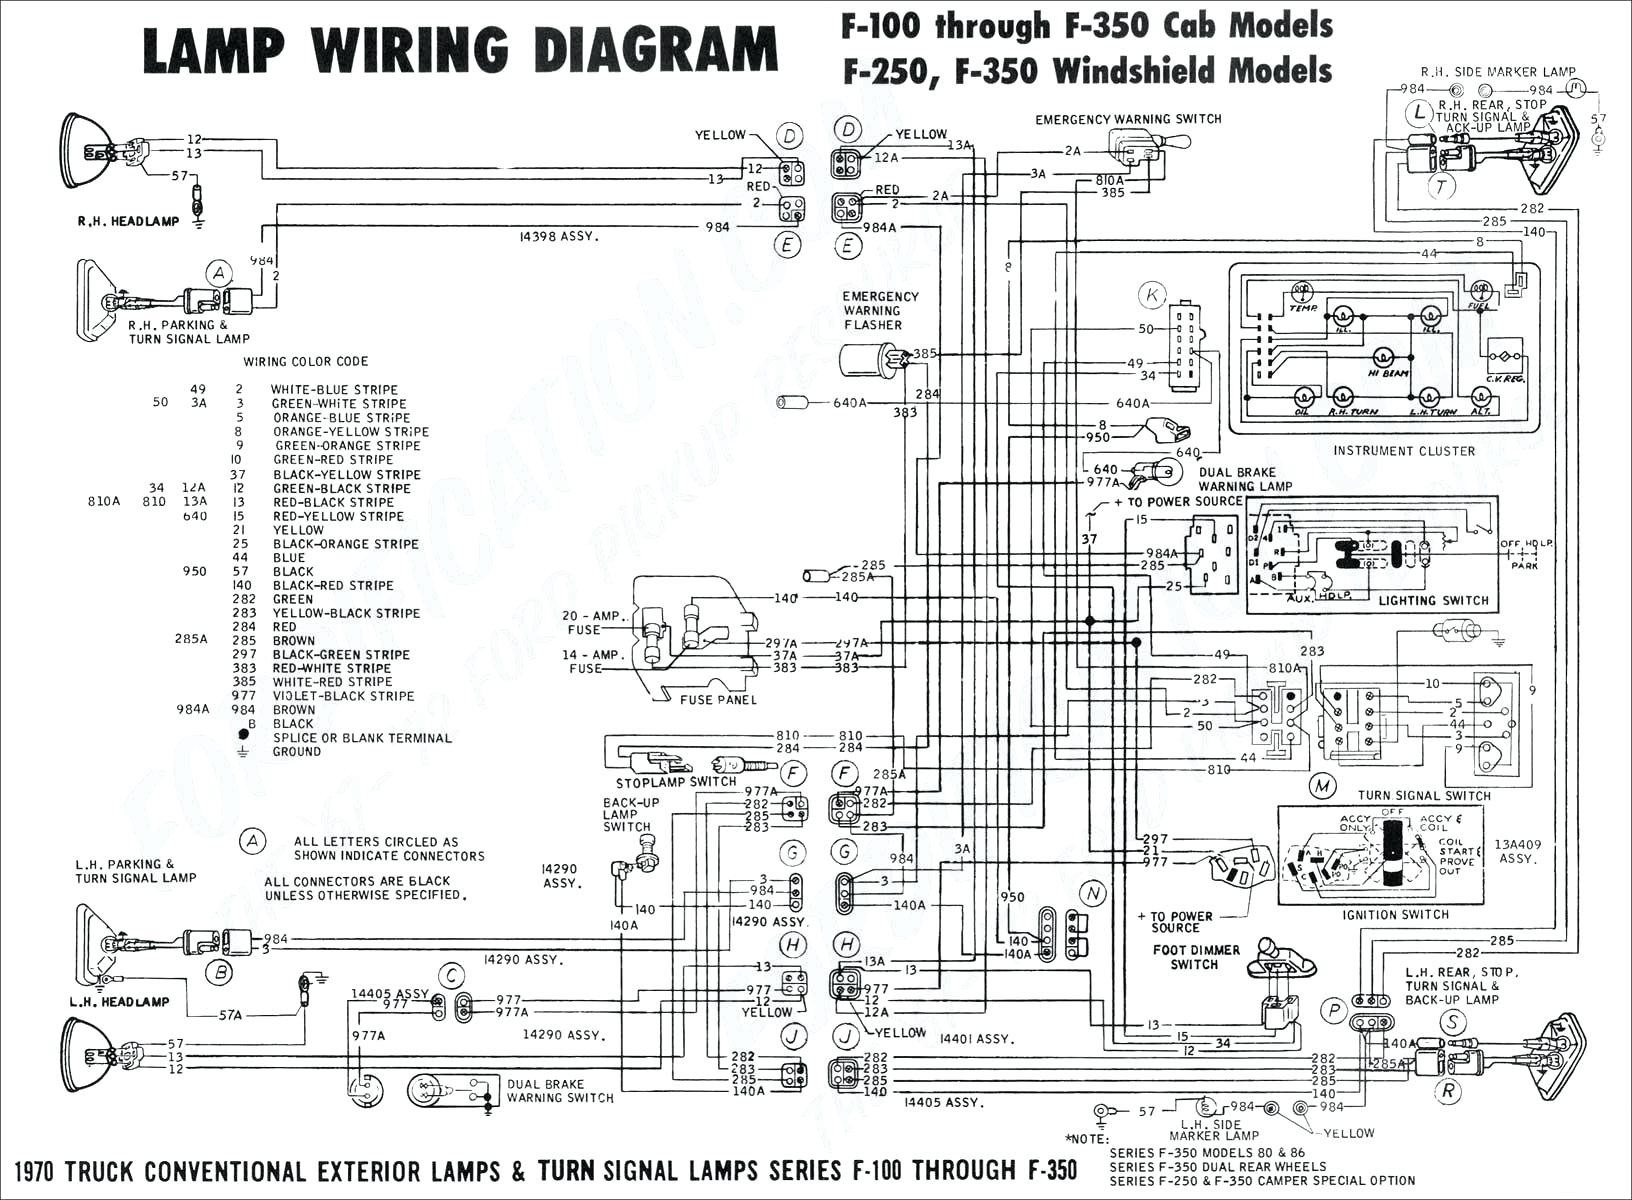 Eby Trailer Wiring Diagram | Wiring Library - Eby Trailer Wiring Diagram